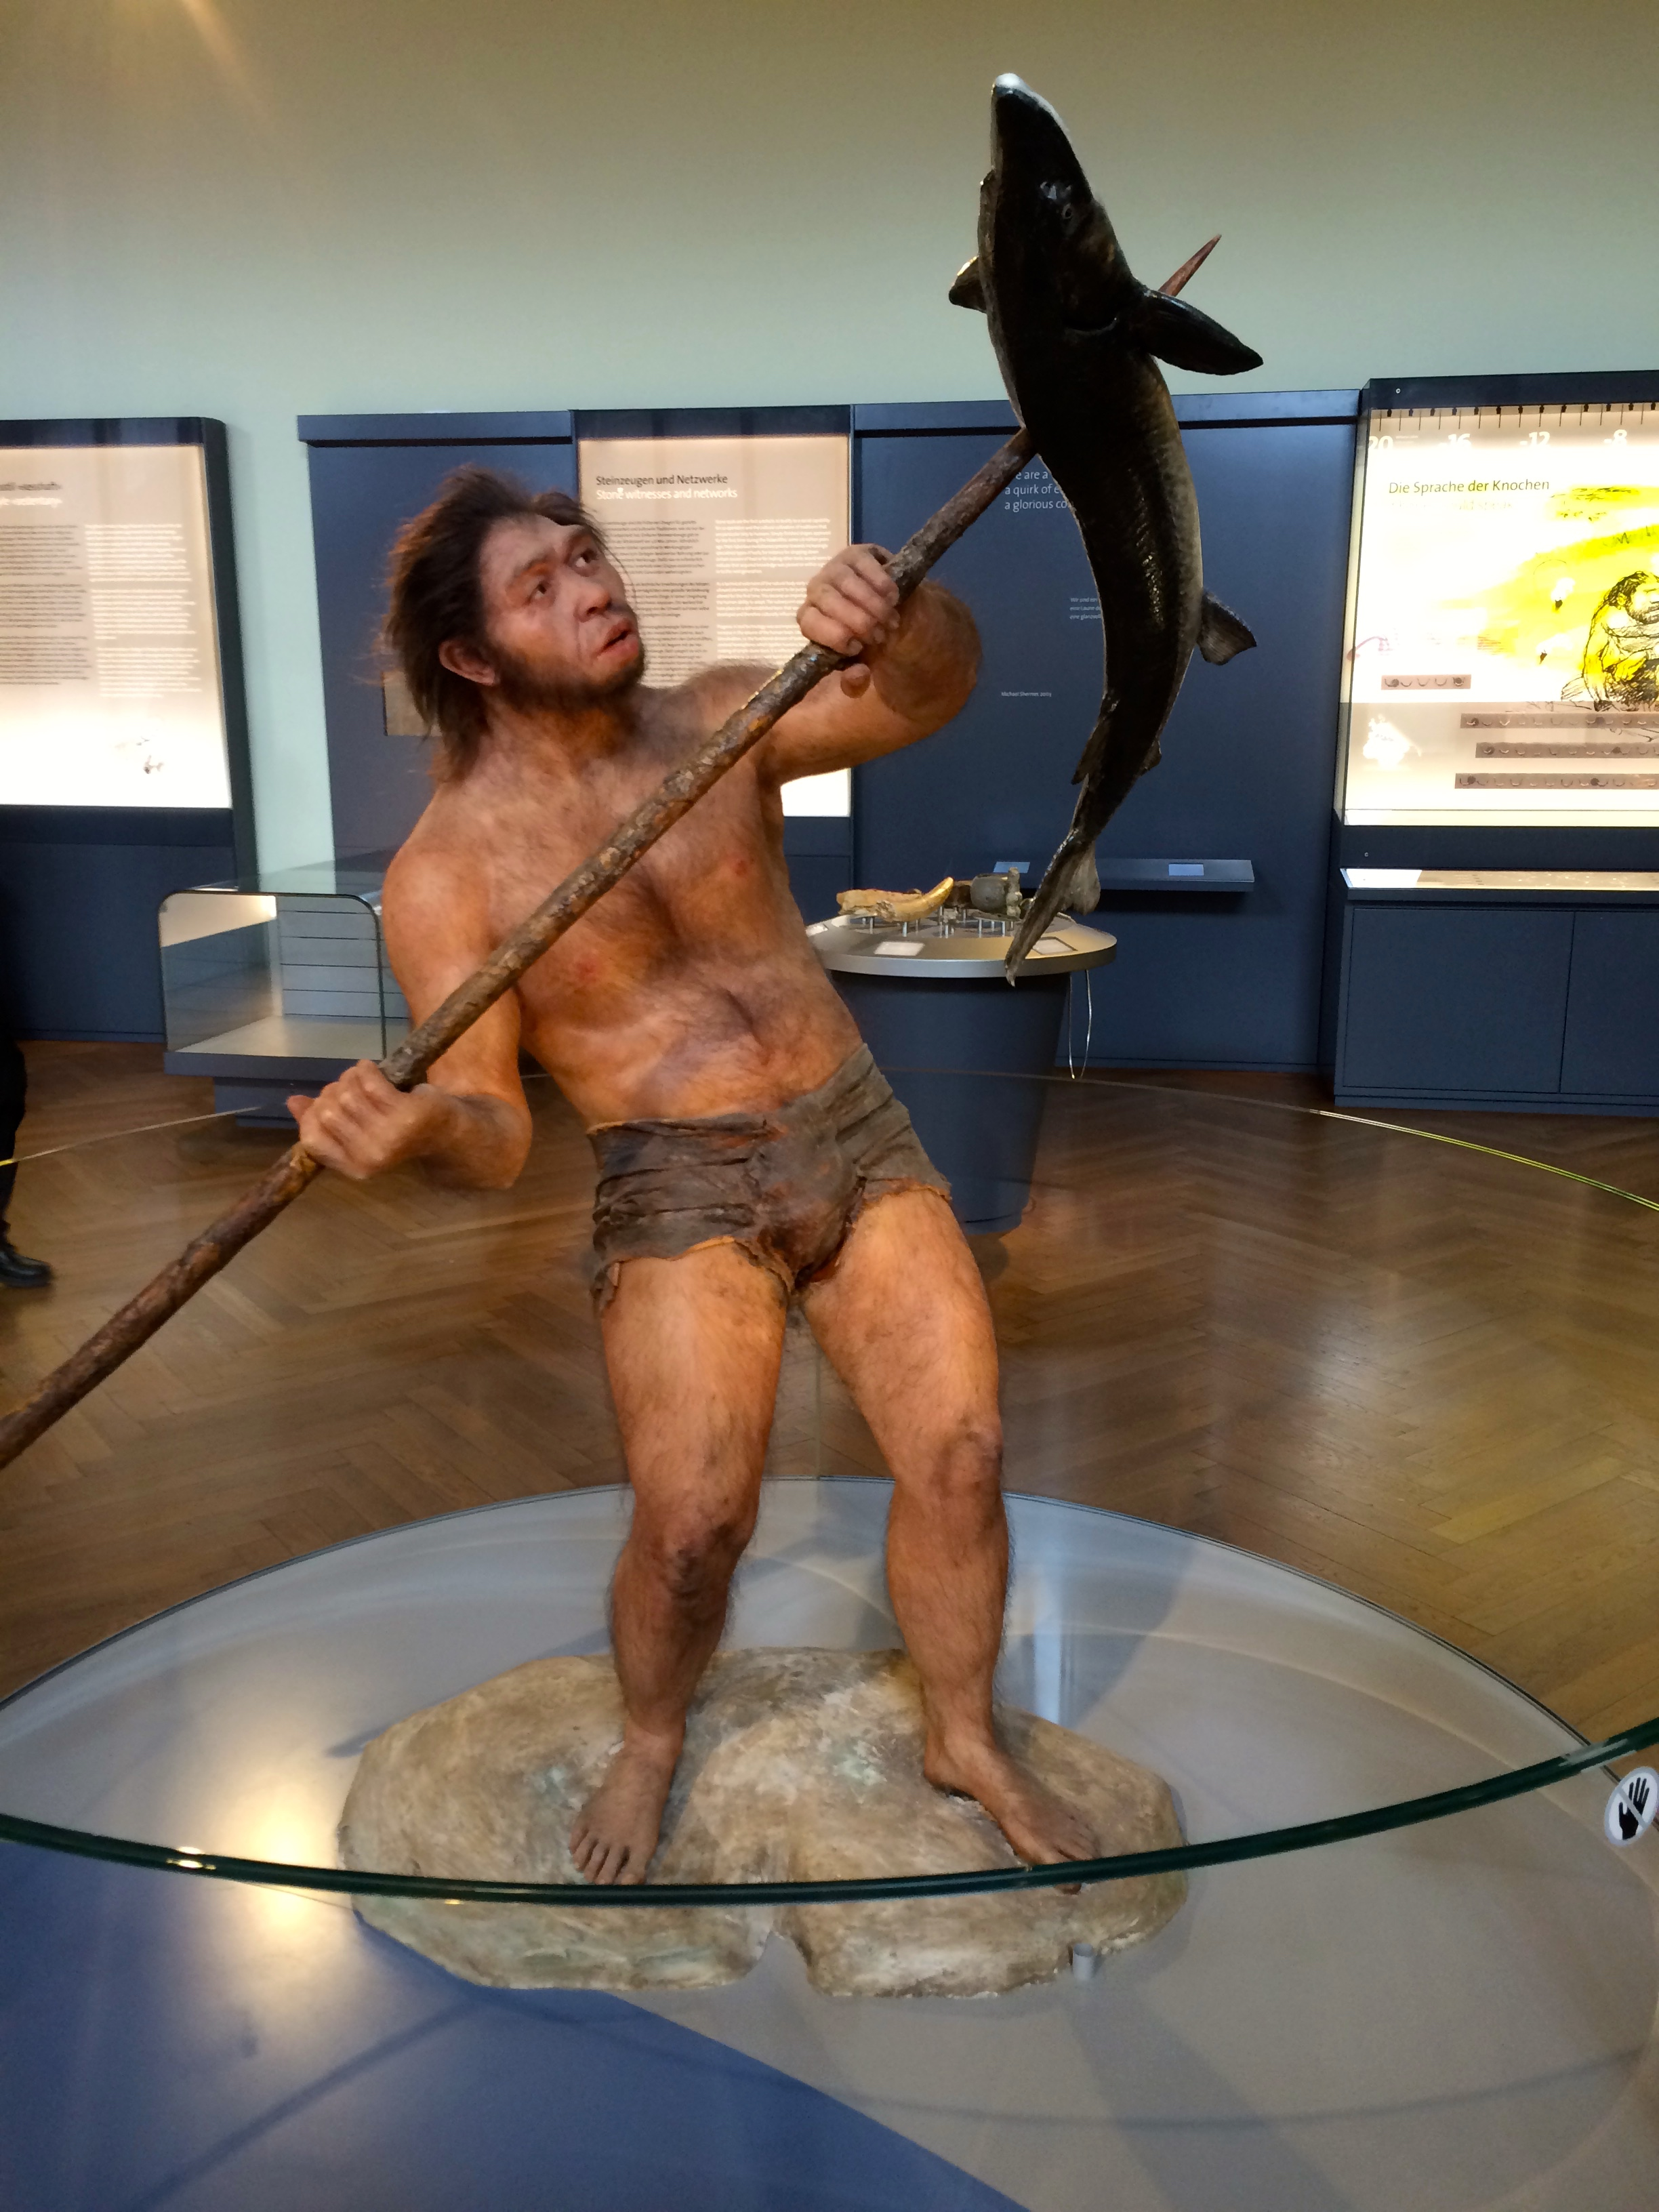 Why's that caveman standing on a lily pad made of stone? Also, he looks completely unsurprised that he caught that fish with a spear. I'd be freaking out.